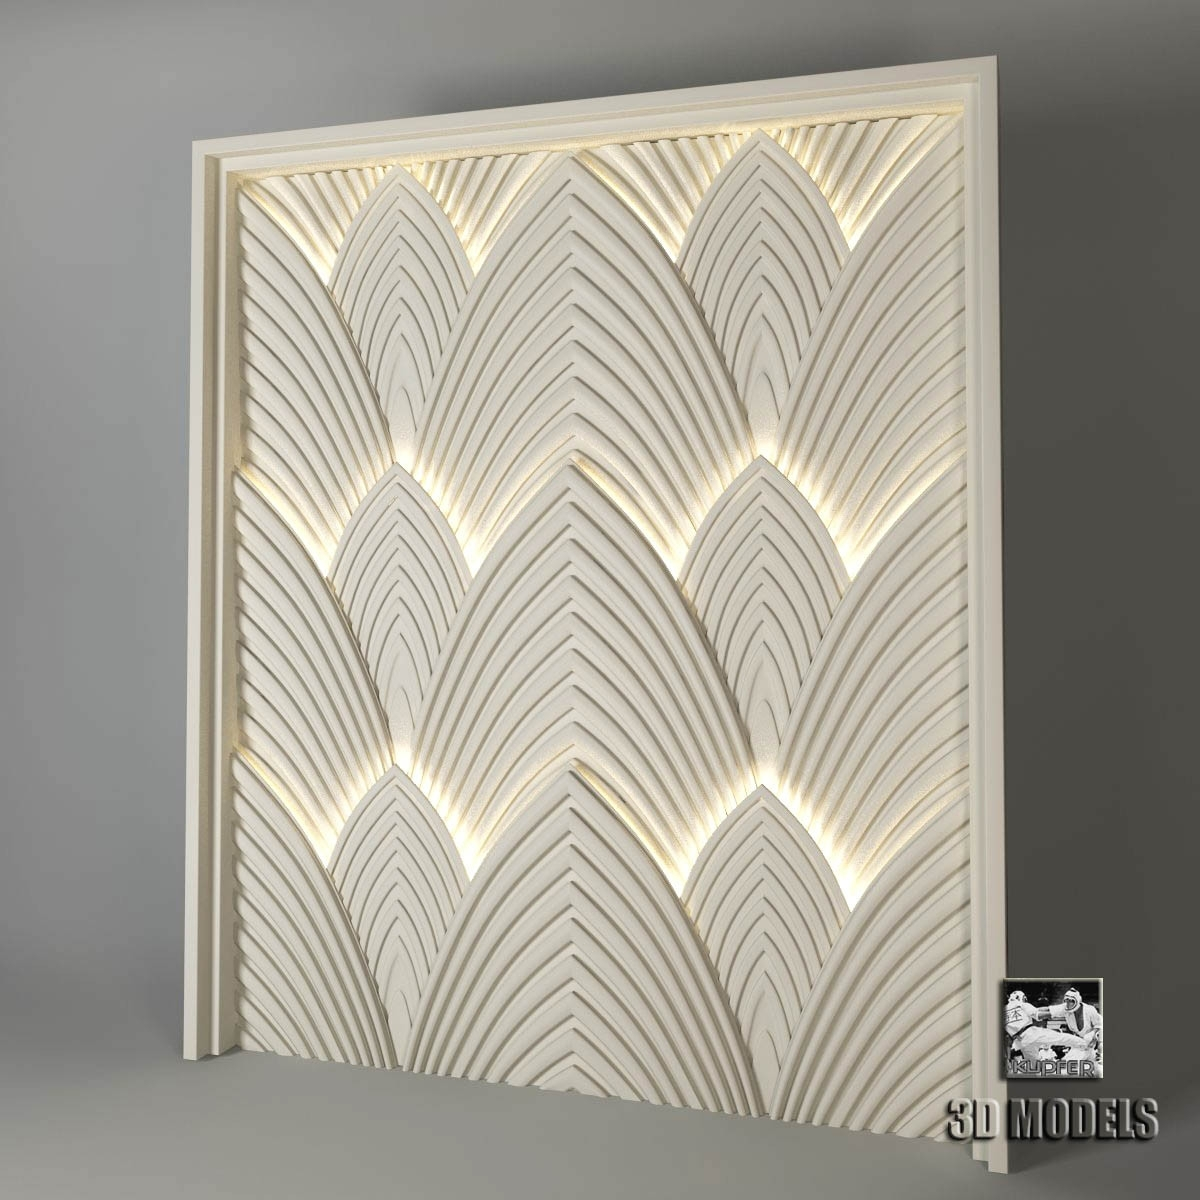 Simple Art Deco Wall Popular Art Deco Wall Art – Prix Dalle Beton Throughout Most Recently Released Art Deco Wall Art (View 3 of 20)